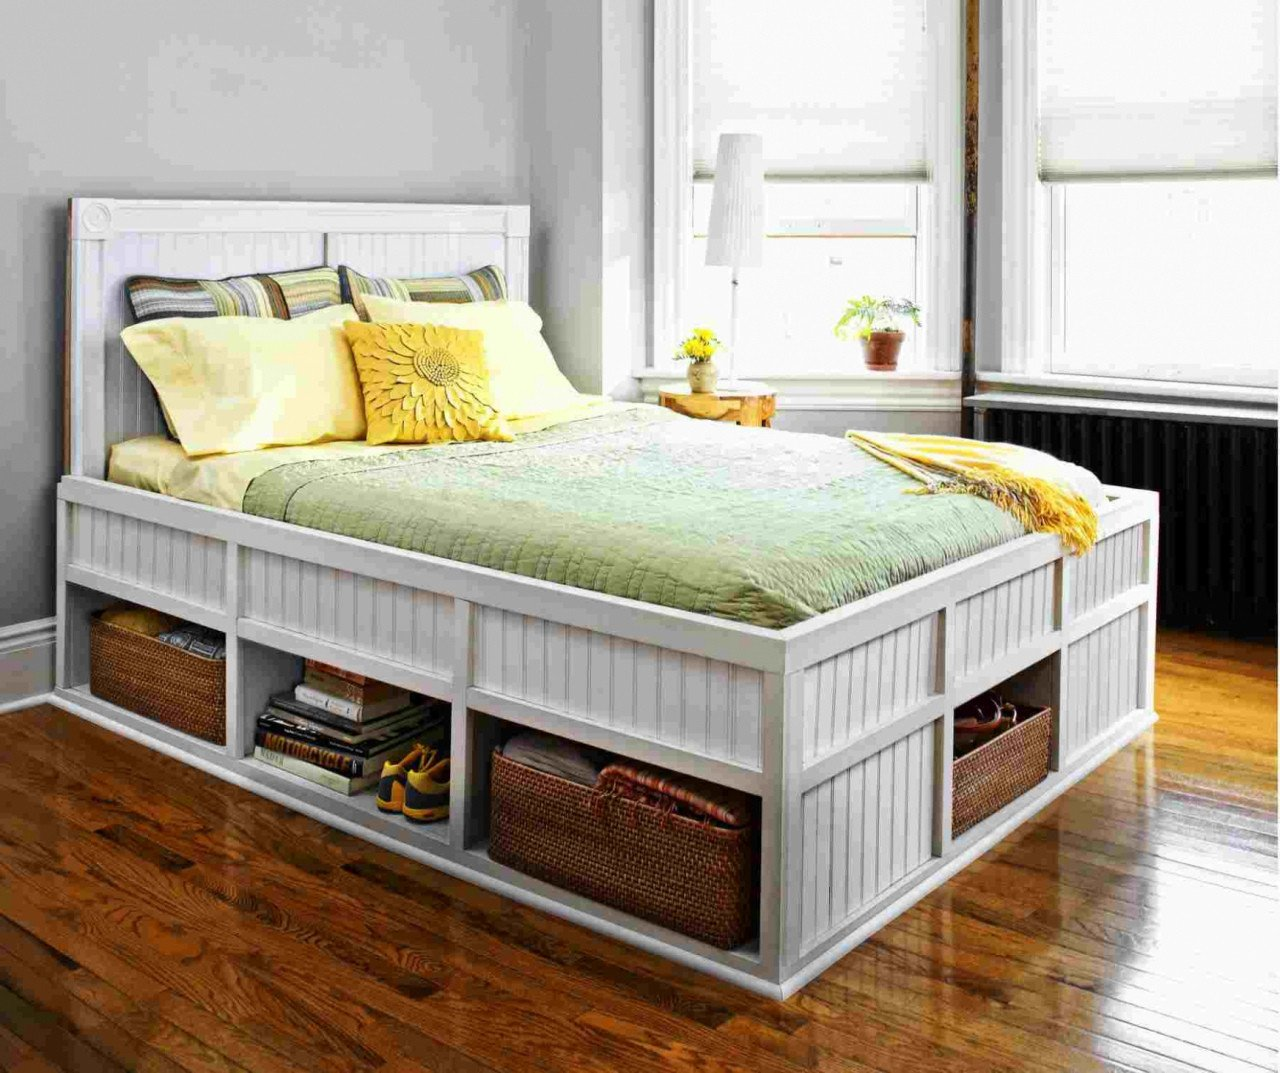 Bedroom Set with Mattress Included Awesome Queen Storage Bed Frame — Procura Home Blog